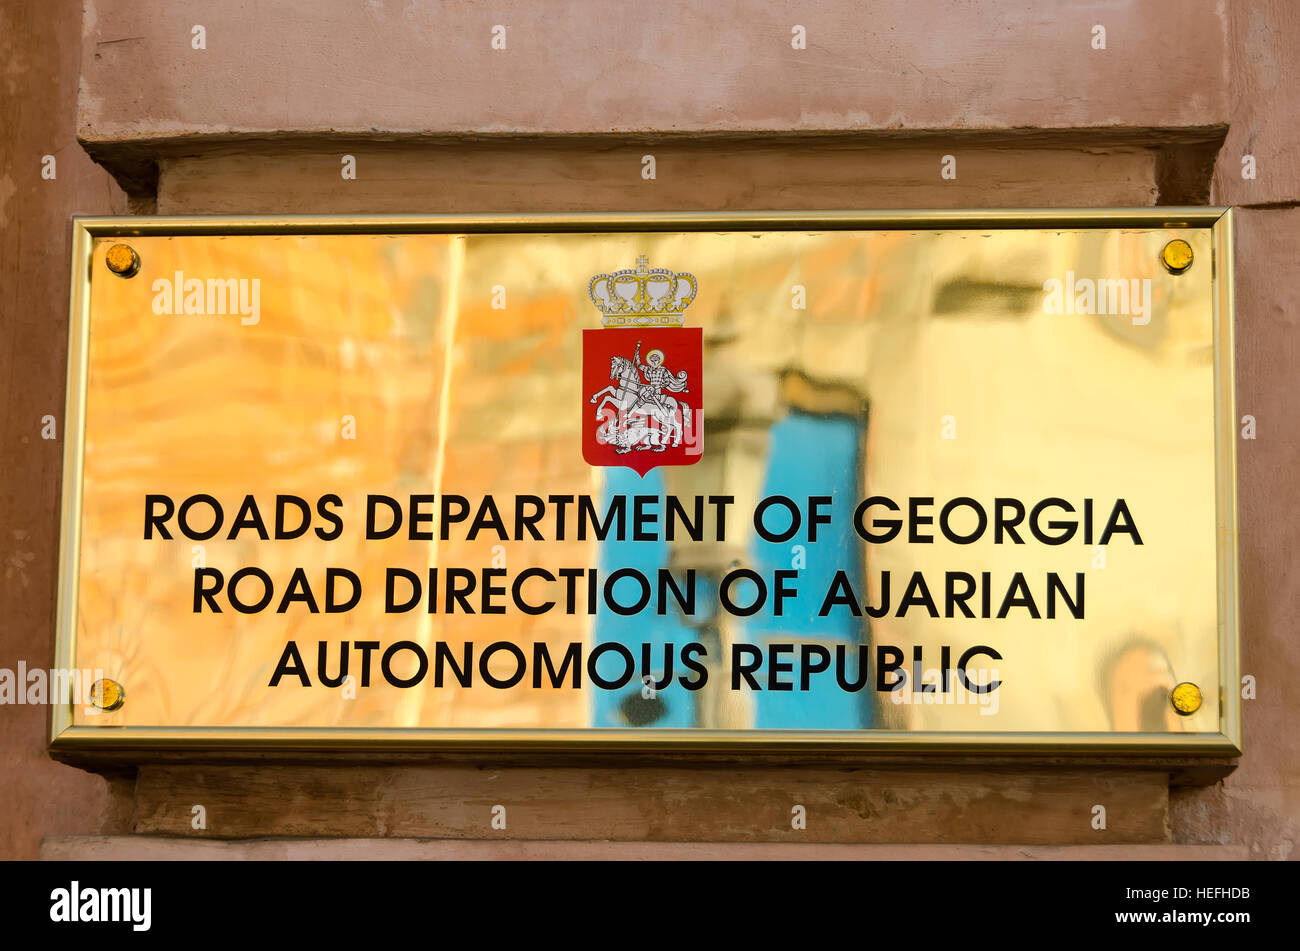 Roads Department of Georgia name plaque, Batumi Georgia - Stock Image